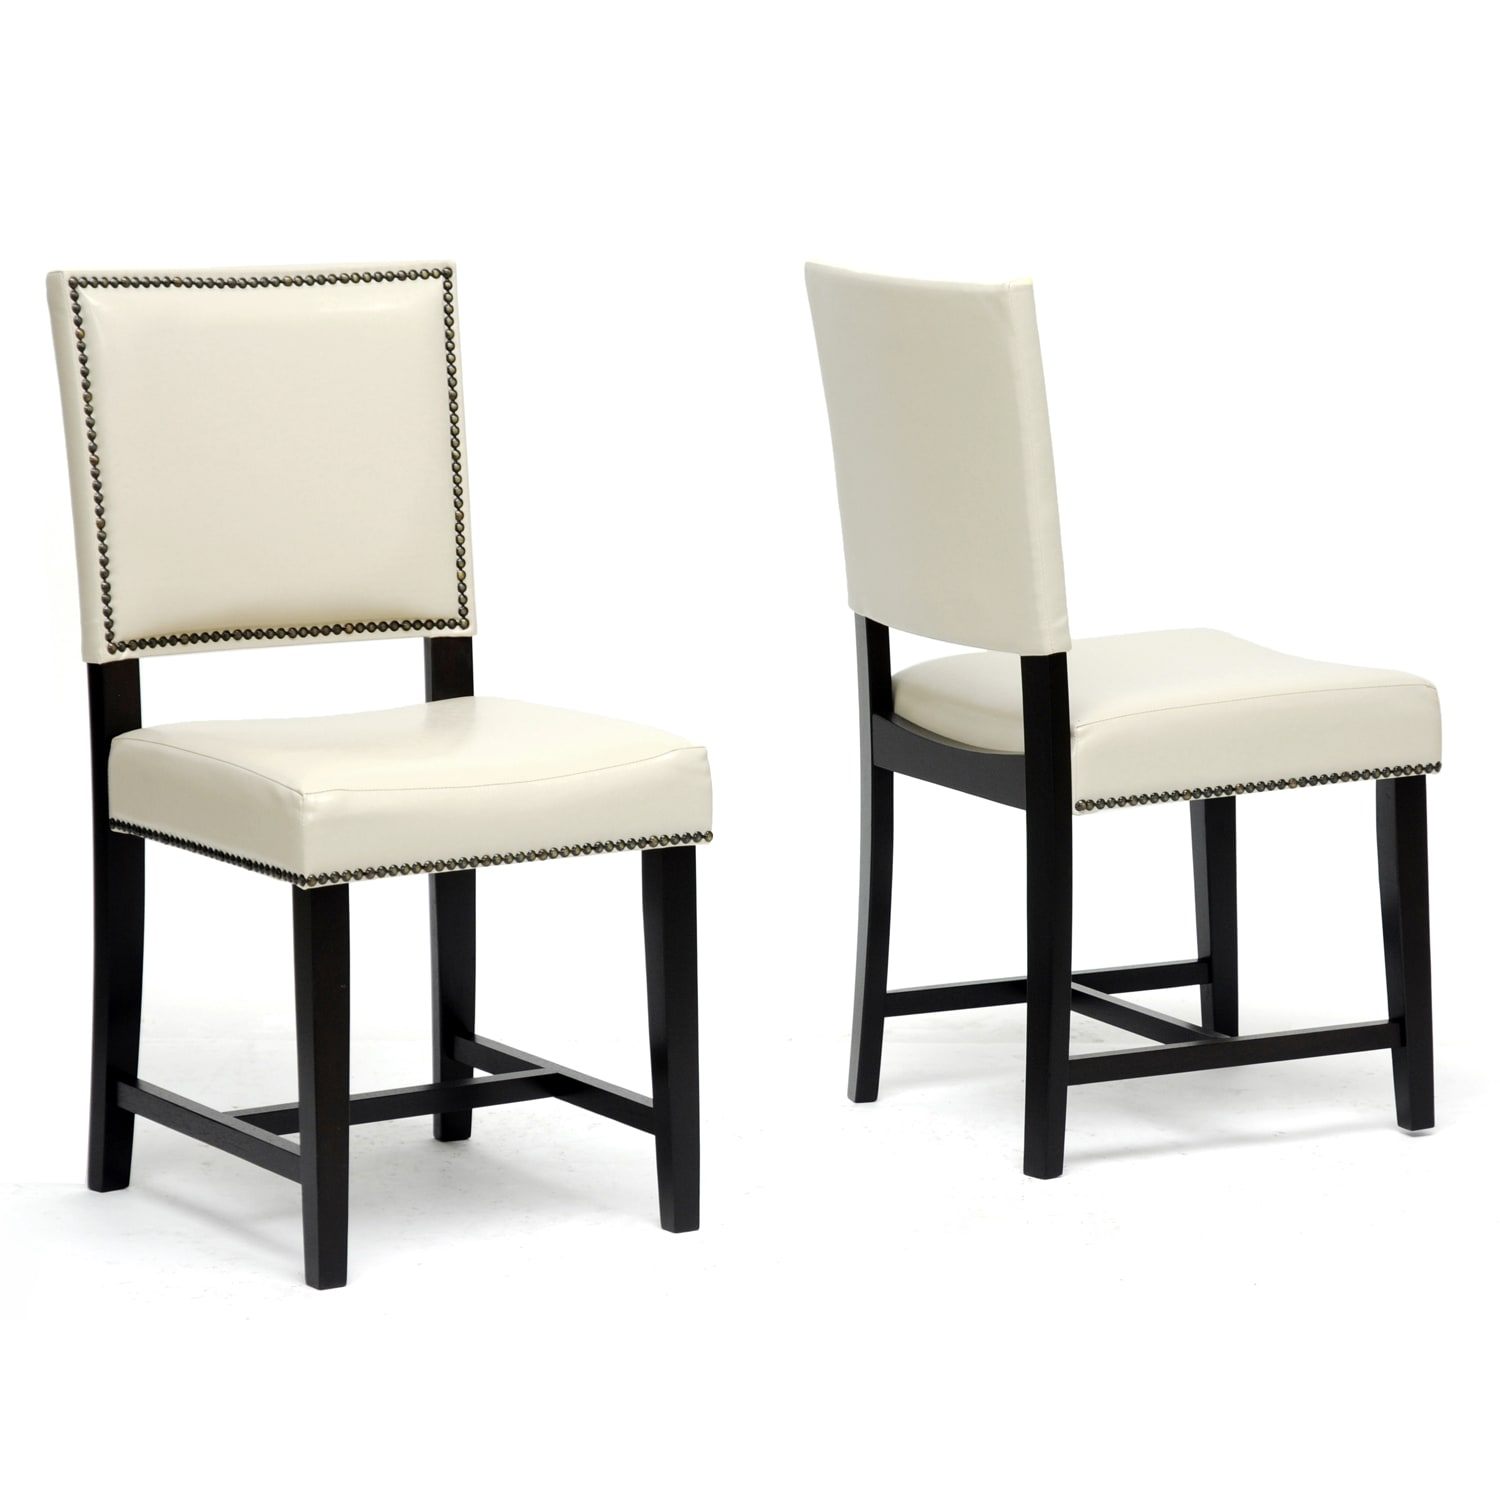 Cream Chairs Baxton Studio Nottingham Cream Faux Leather Modern Dining